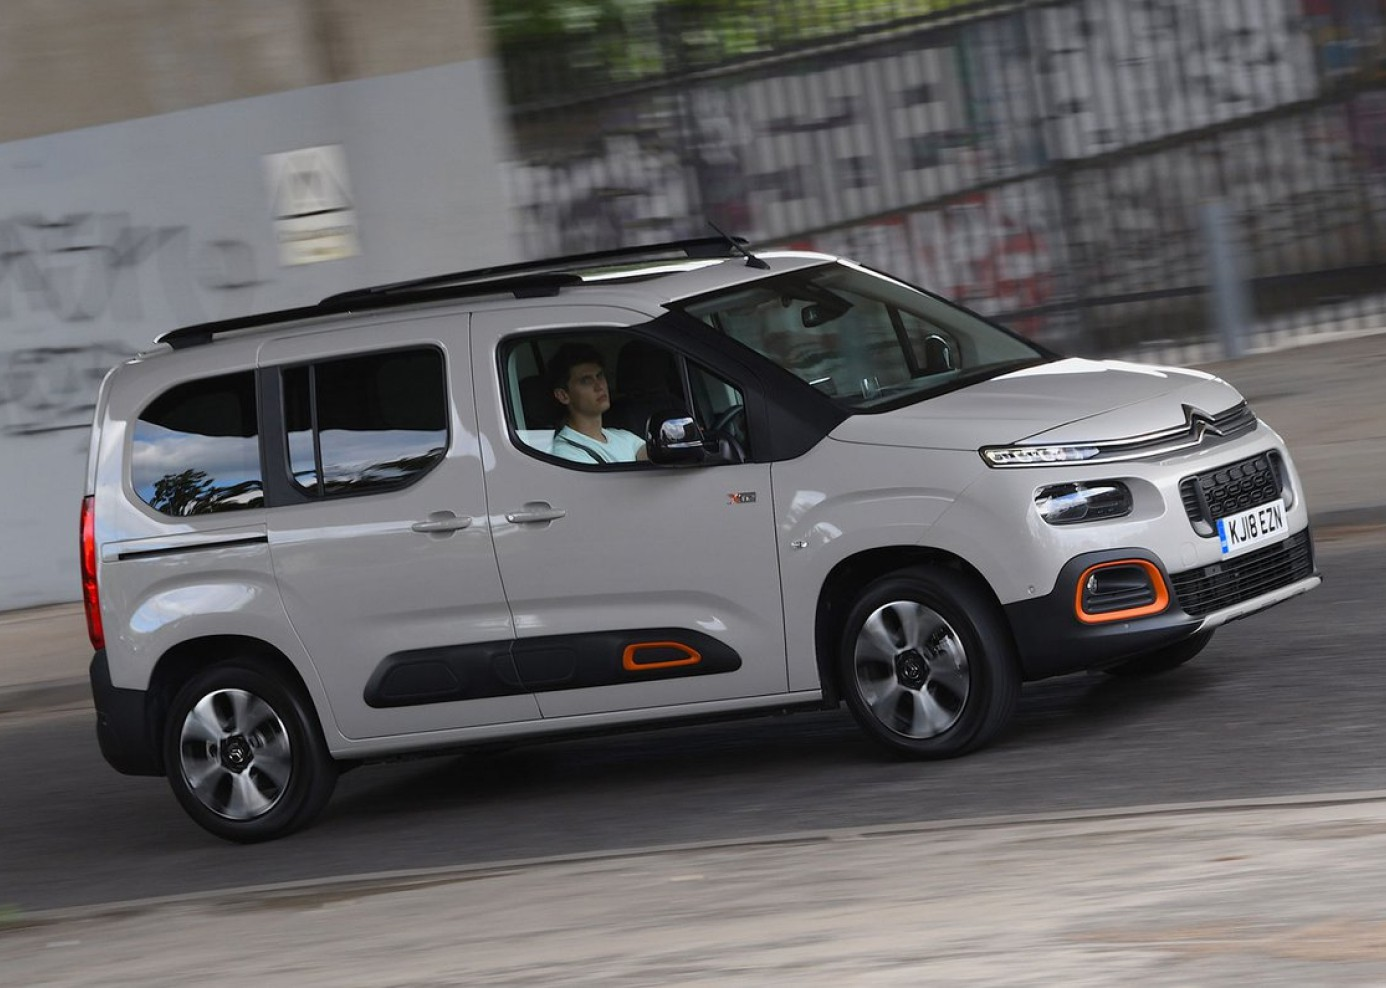 Citroen Berlingo - Urban Camper